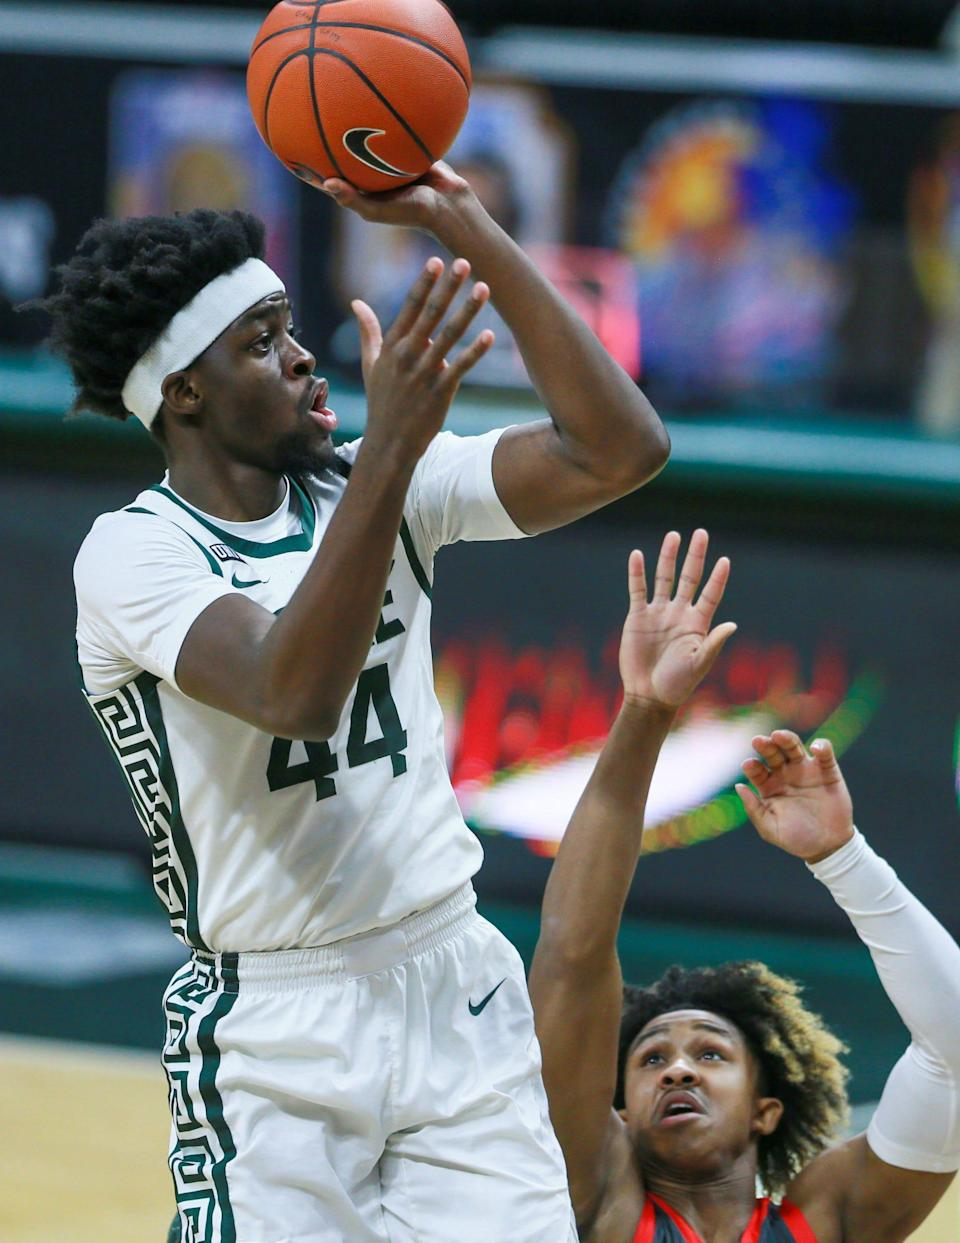 Michigan State forward Gabe Brown shoots during the first half against Ohio State on Thursday, Feb. 25, 2021, in East Lansing.